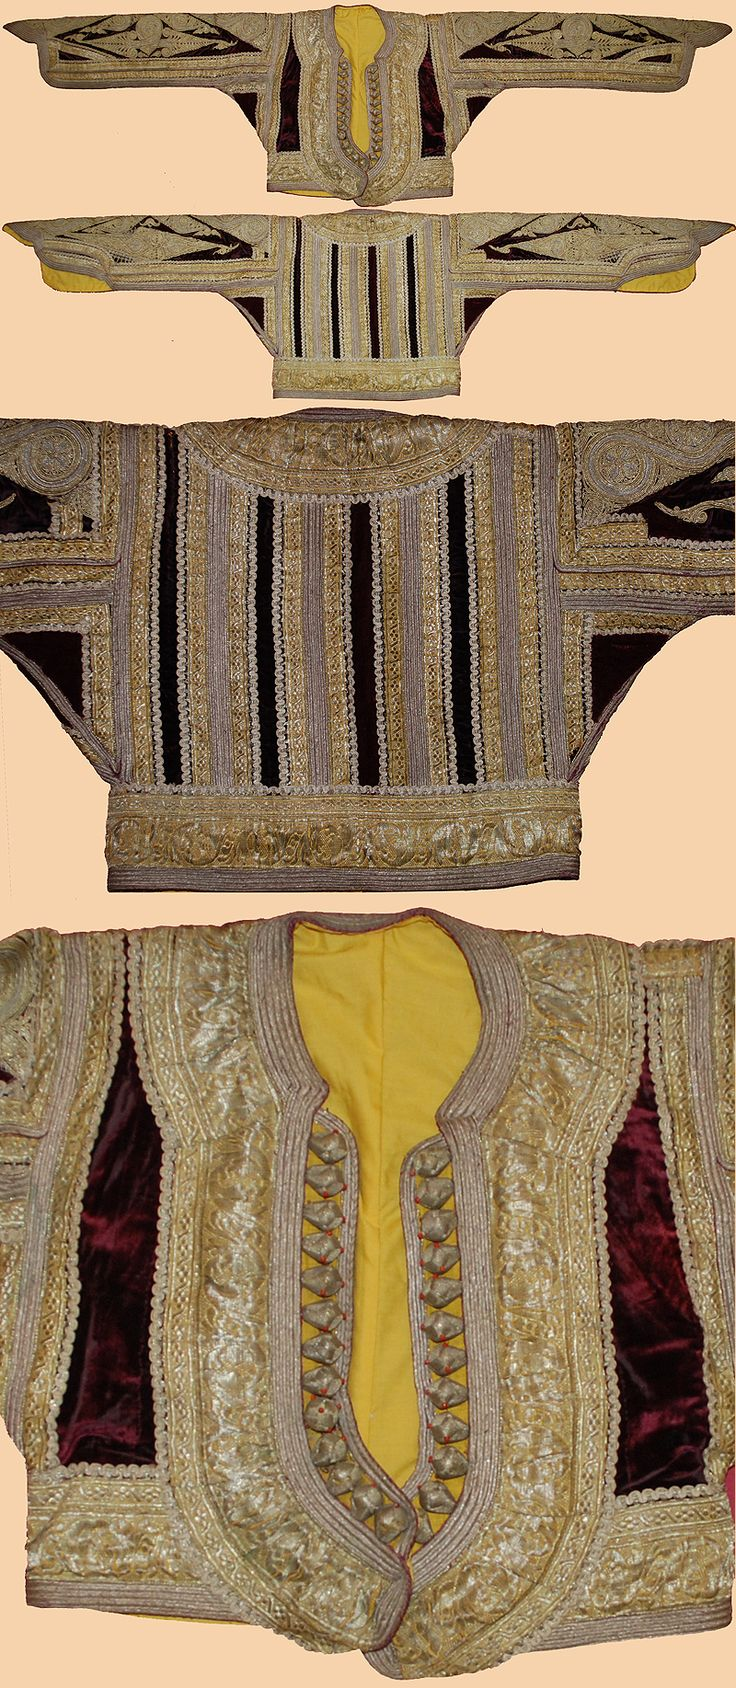 Antique Ottoman Jacket. Balkam Velvet  Jacket  Embroidered  with Gold and  Silver Thread  Ottoman Dynasty  1453-1922A.D